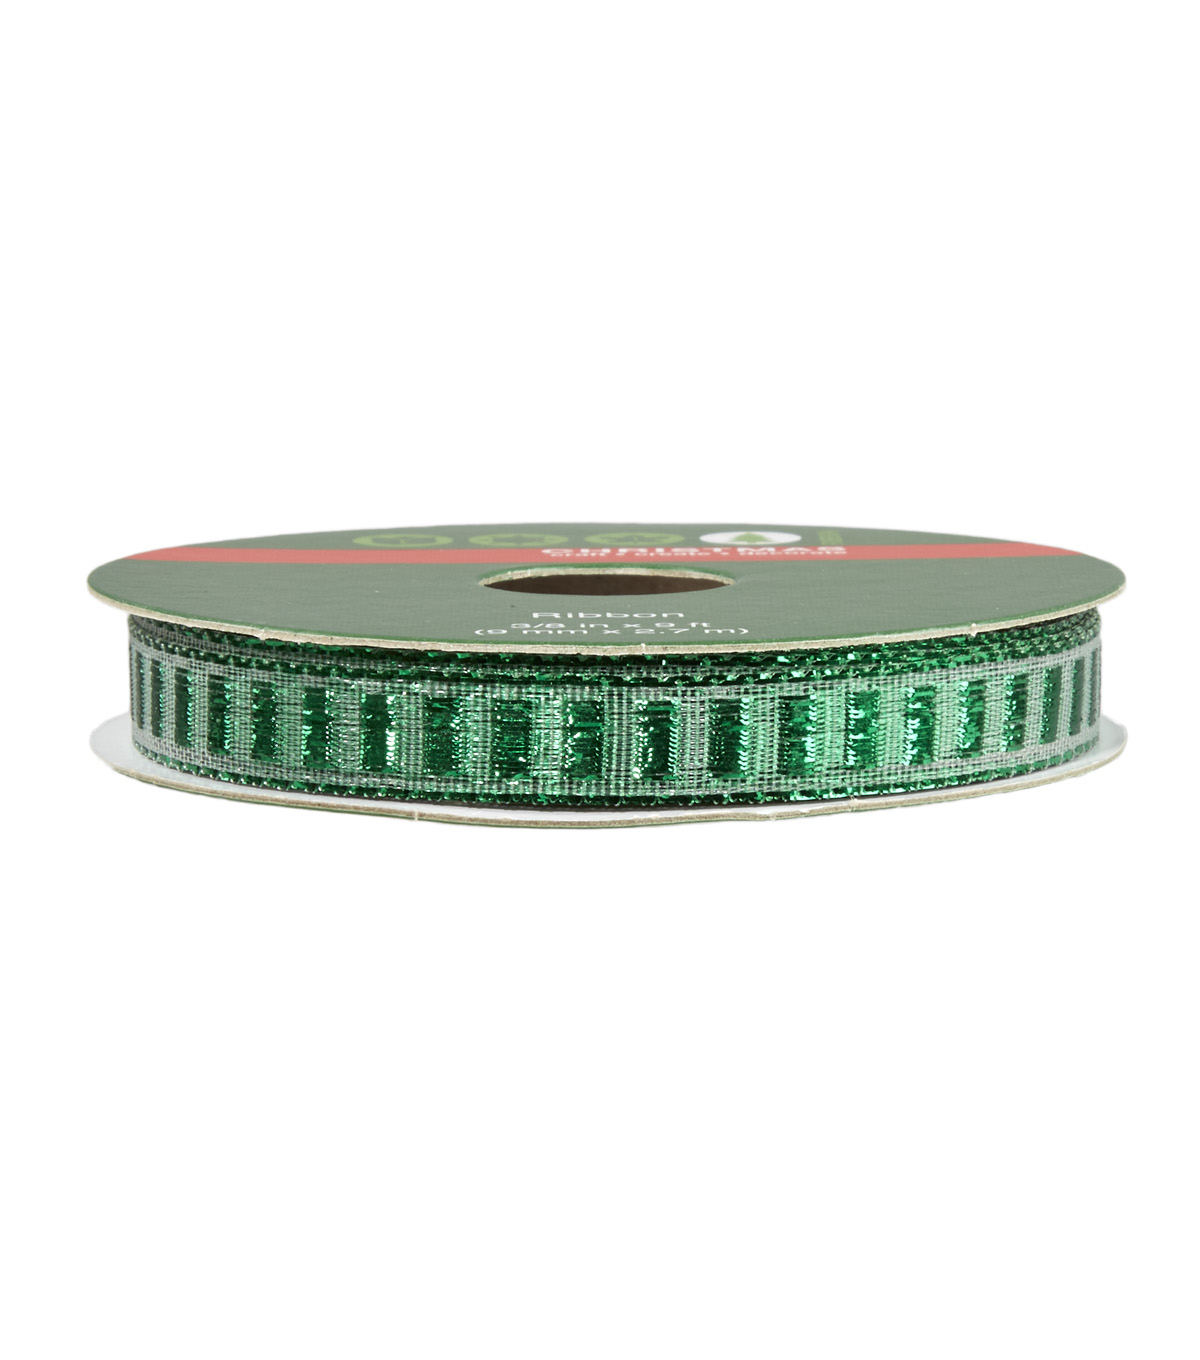 Christmas Ribbon 3/8 in x 9 ft - Green Mylar Sheer